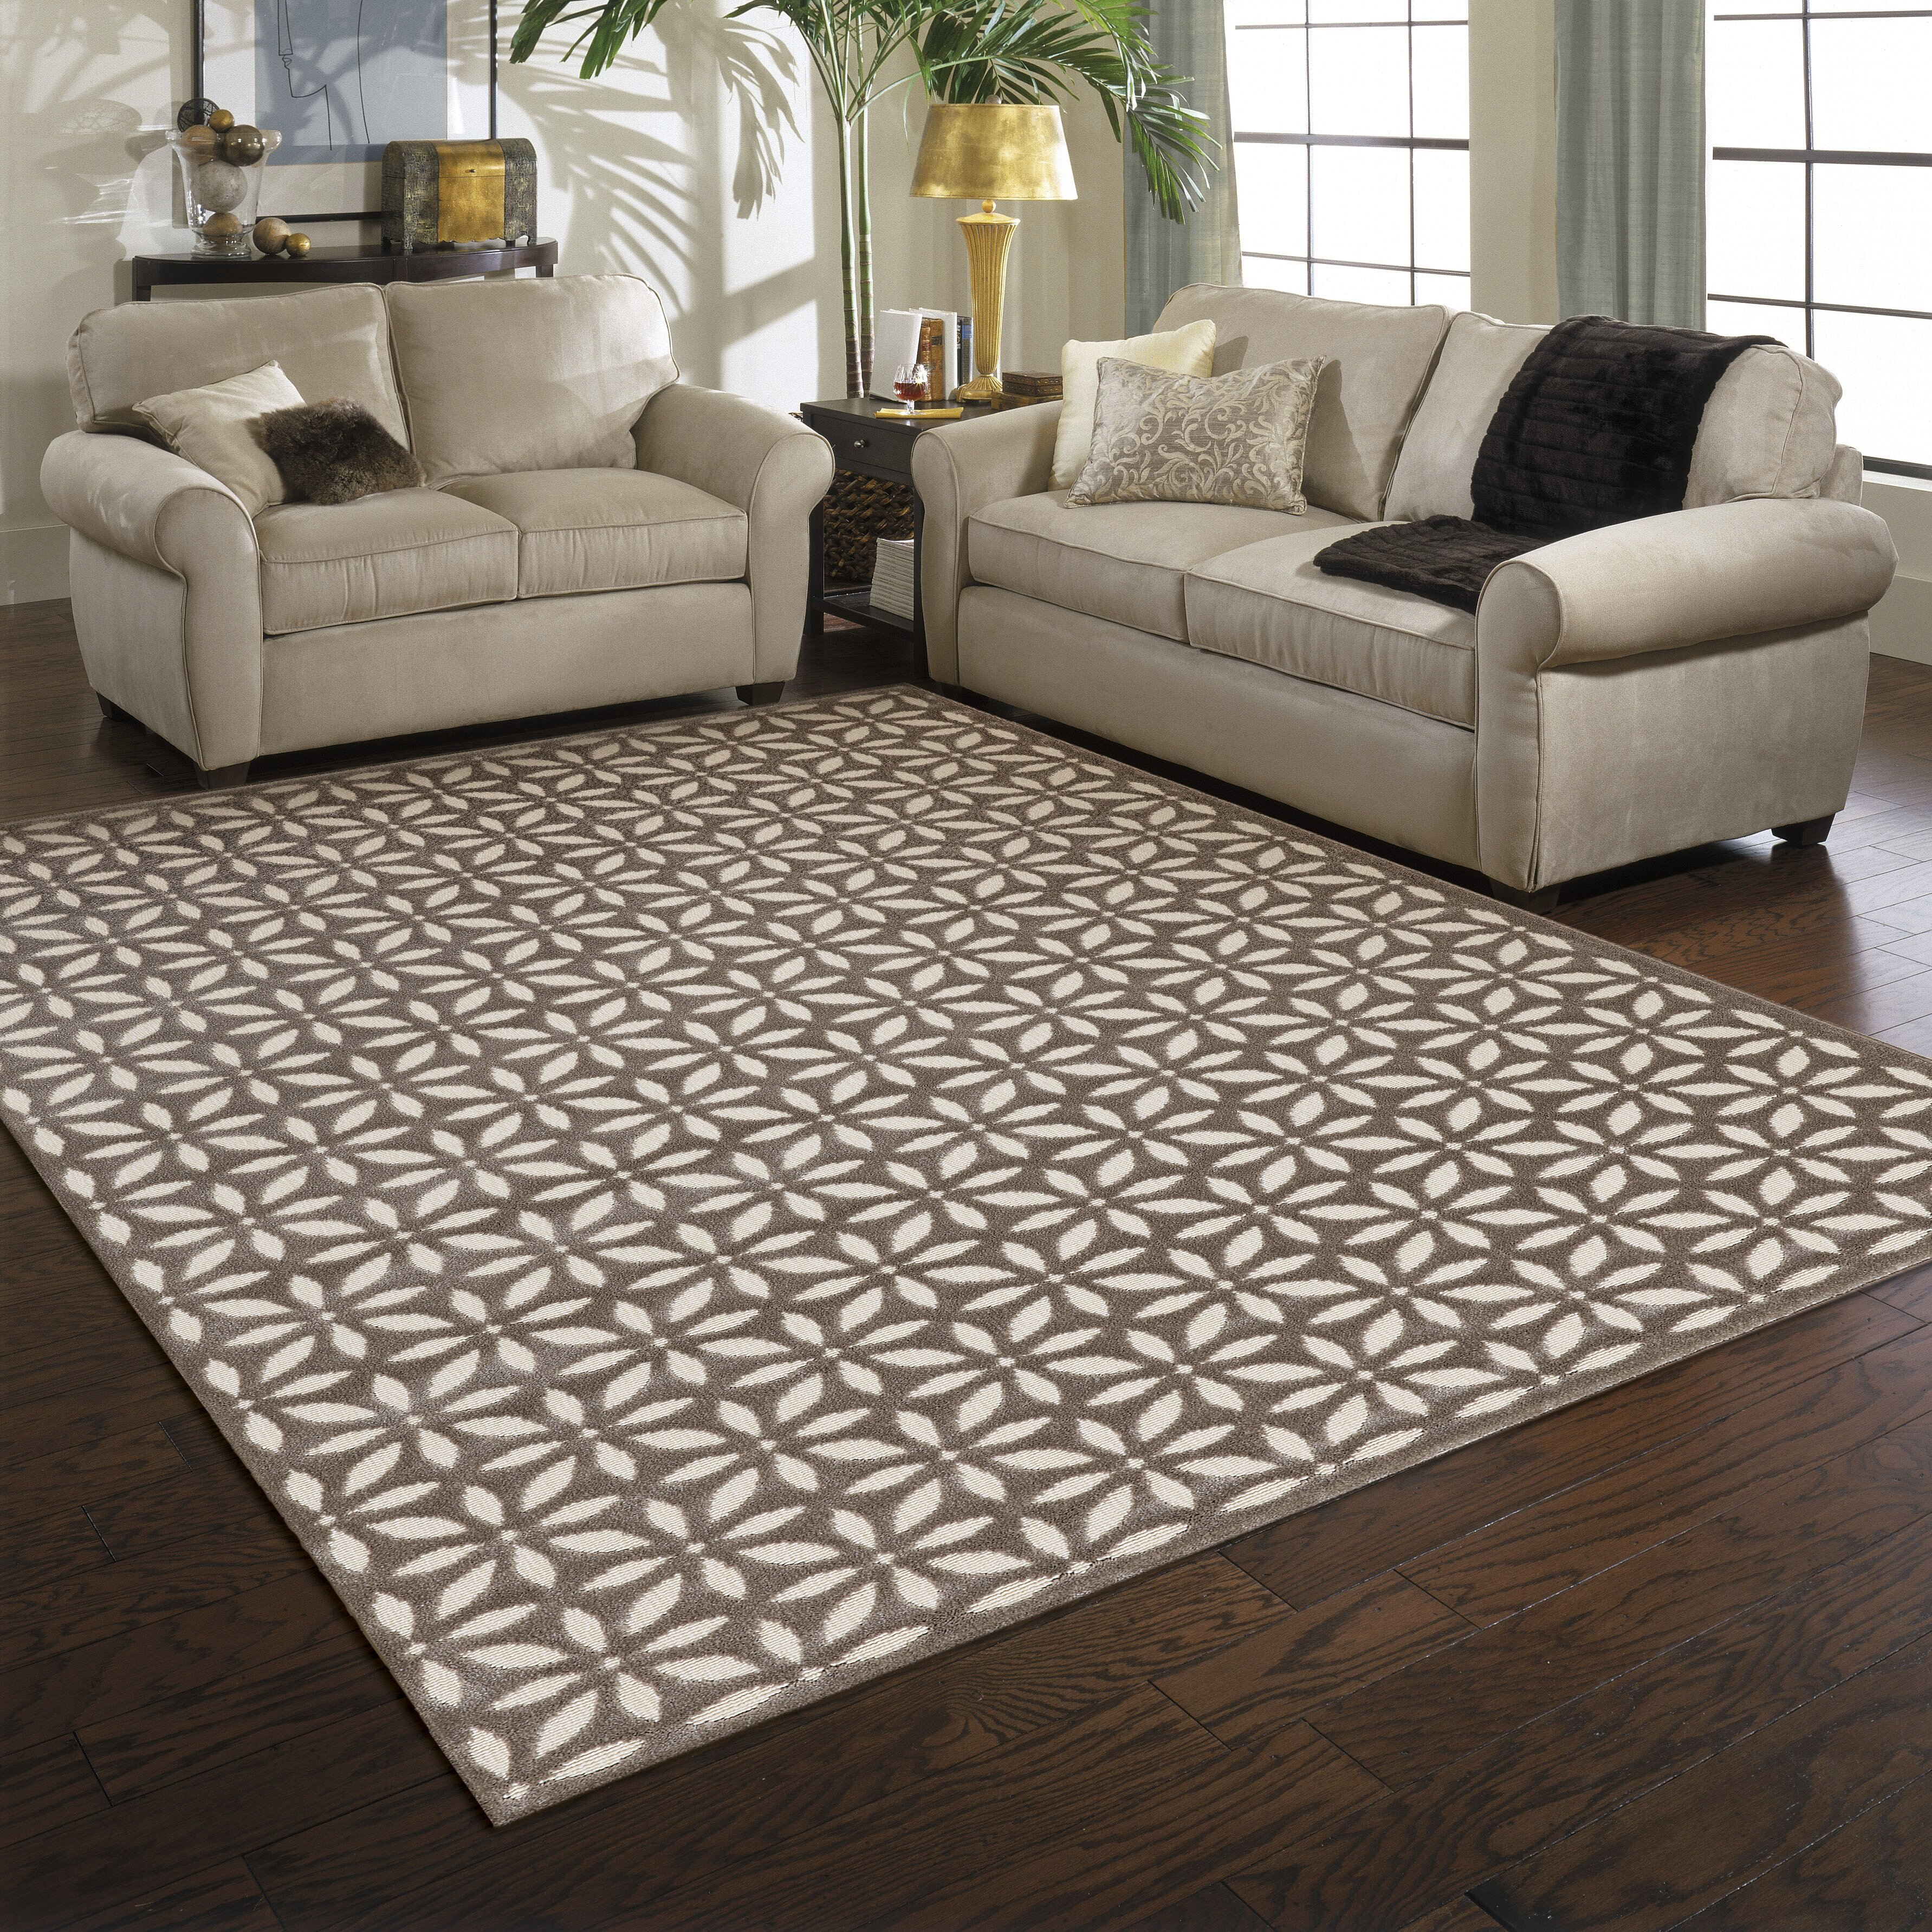 Balta beige grey area rug for Grey and tan rug